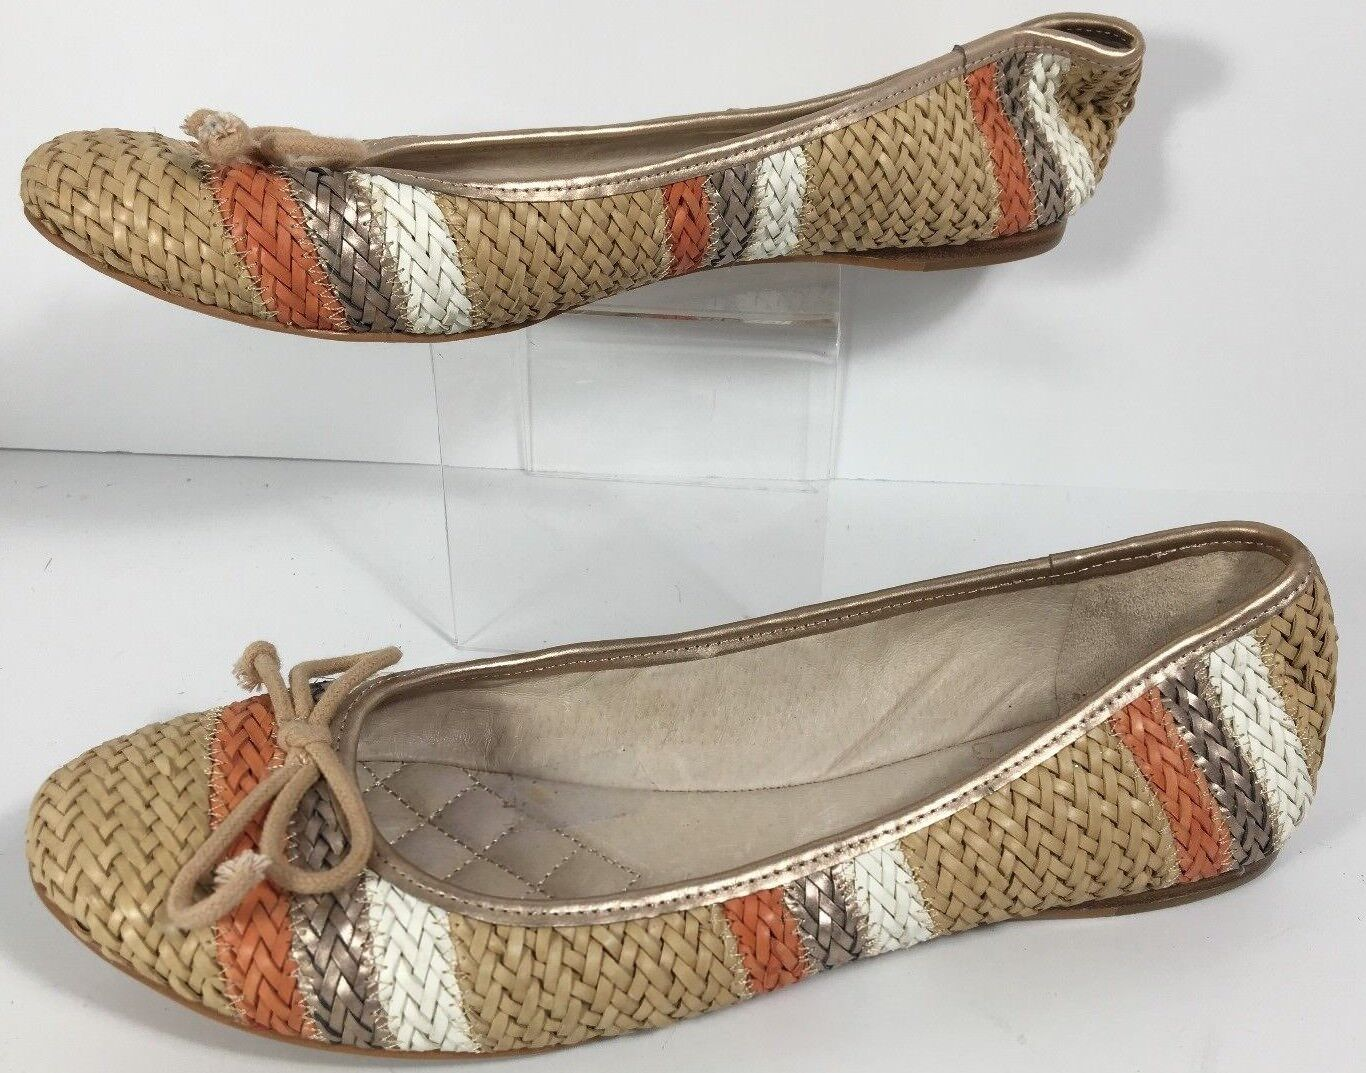 Vintage Vince Camuto Striped Basket Weave Flats Size 10 M Leather Lining